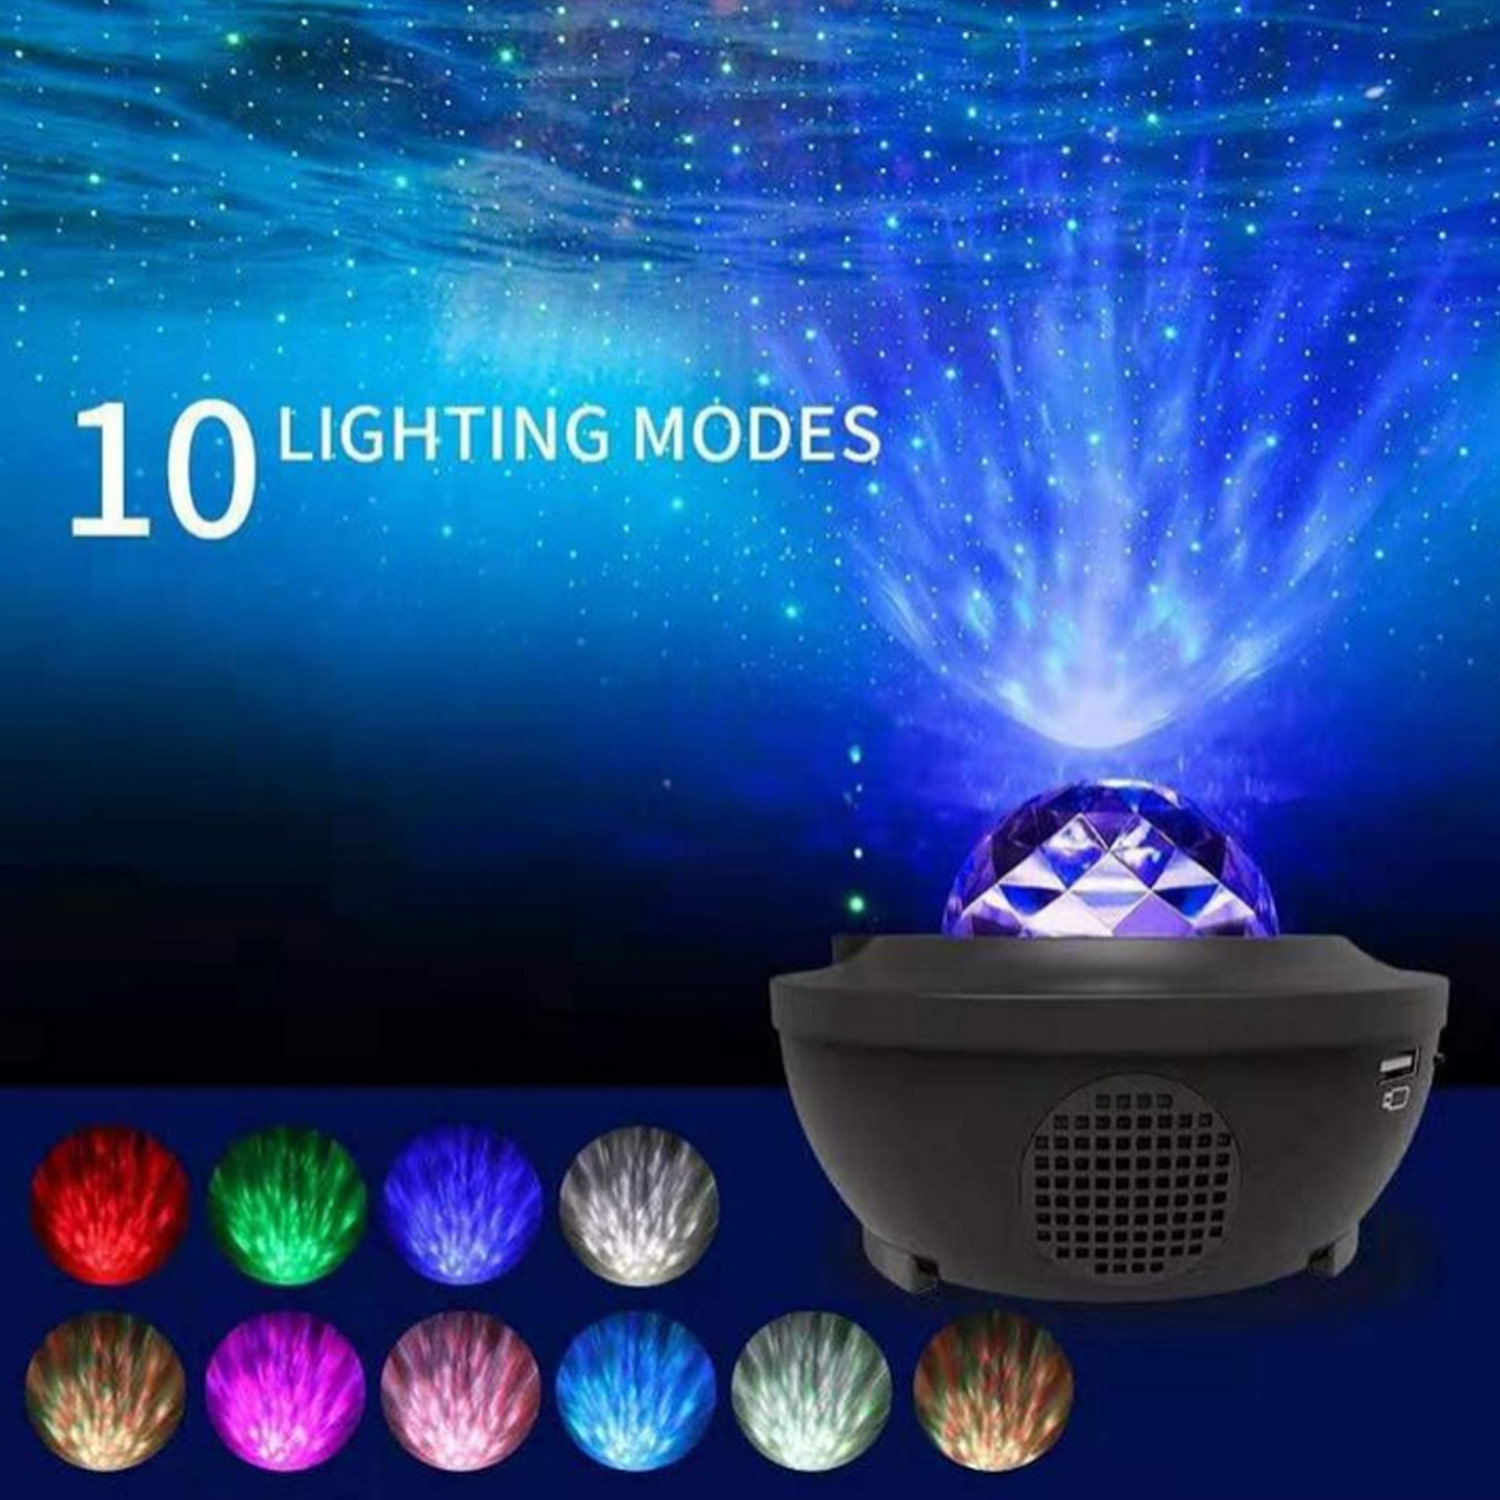 Starry Sky Projector Light USB Powered Remote Control Star Projection Night Light Lamp With Bluetooth Speaker 10 Lighting Modes